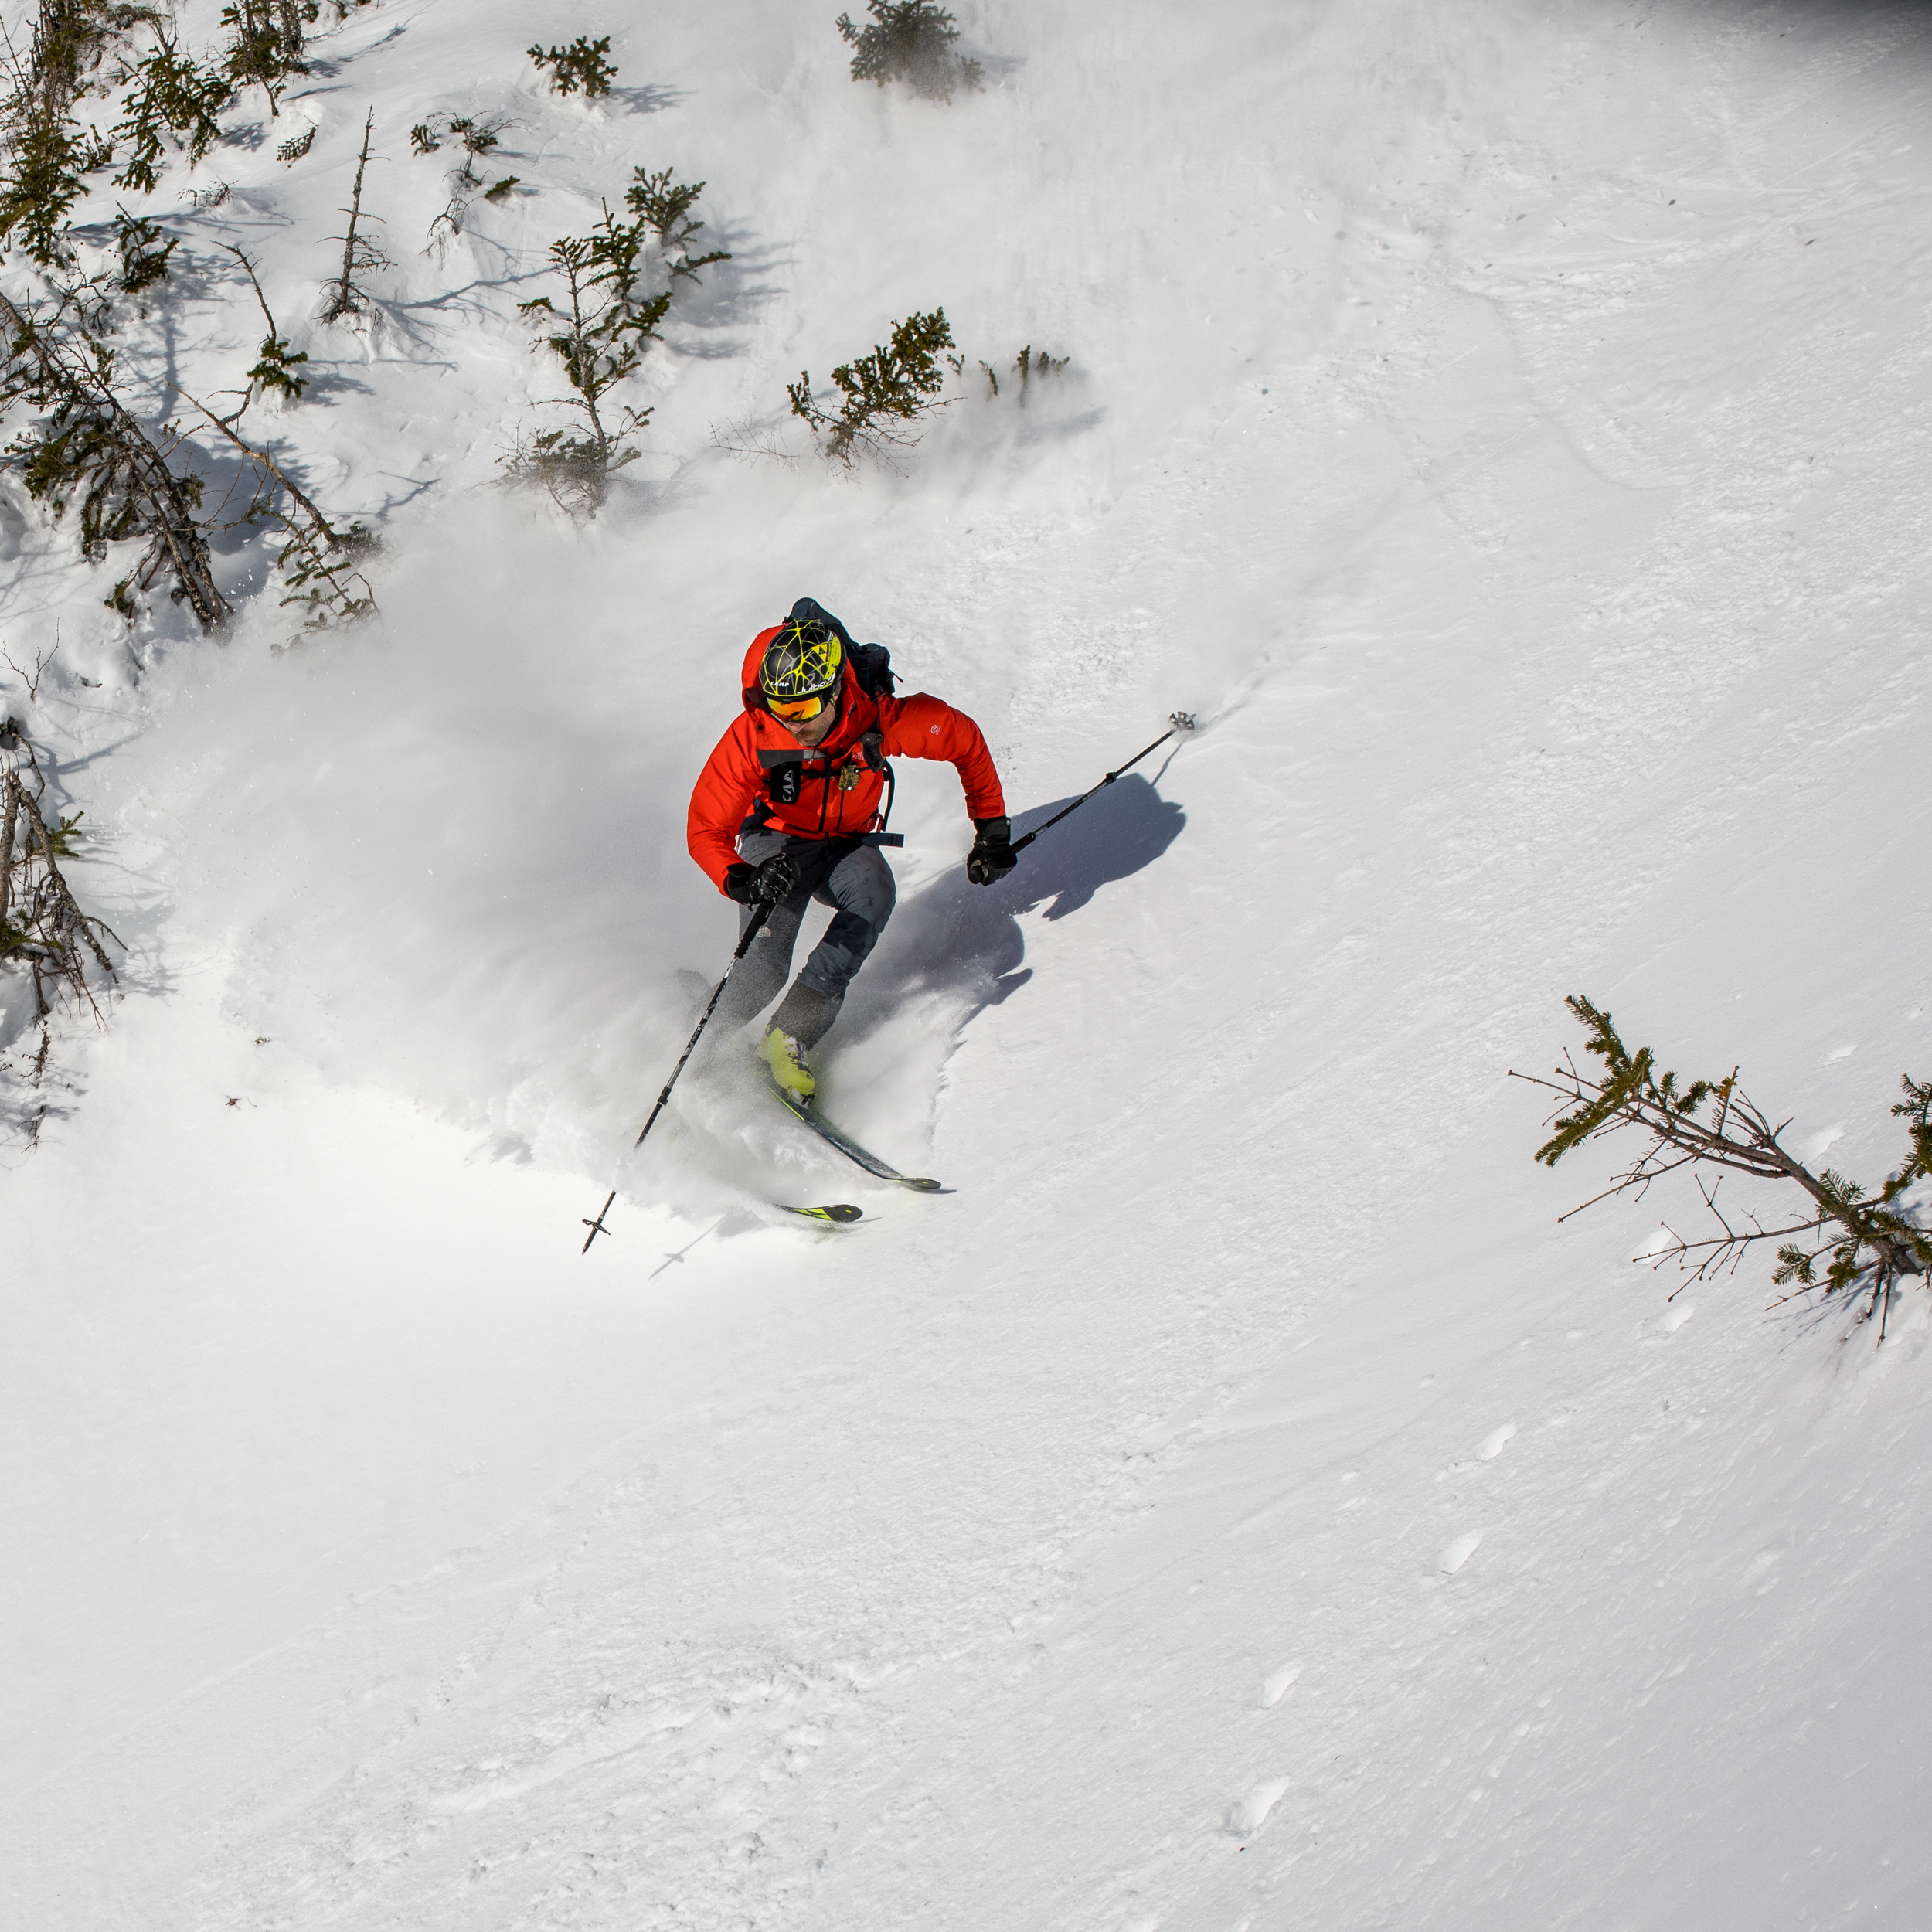 Andrew Drummond Skier The North Face.jpg